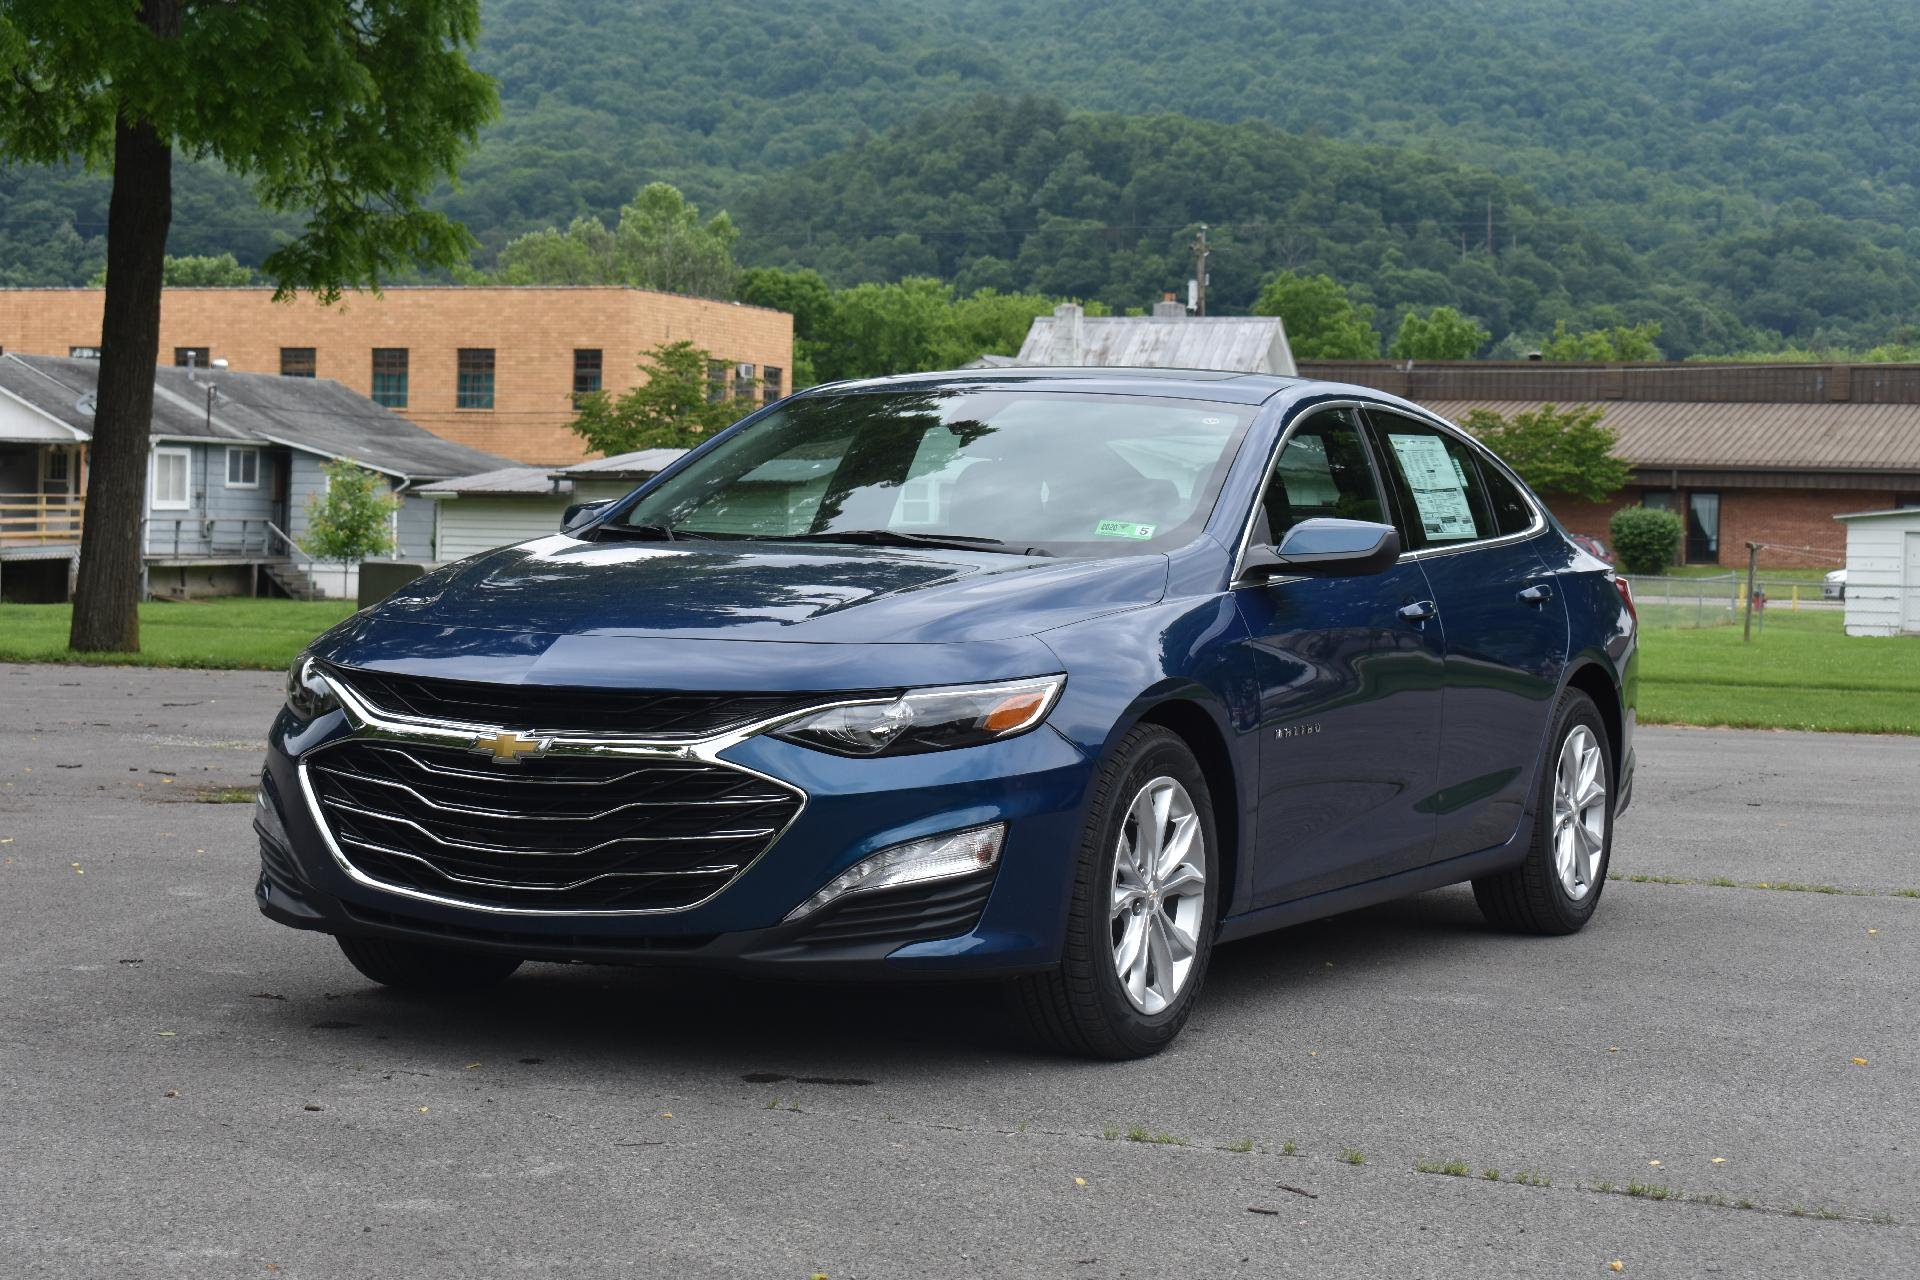 New 2019 Chevrolet-Malibu RS Malibu RS for sale $24,220 at M and V Leasing in Brooklyn NY 11223 1